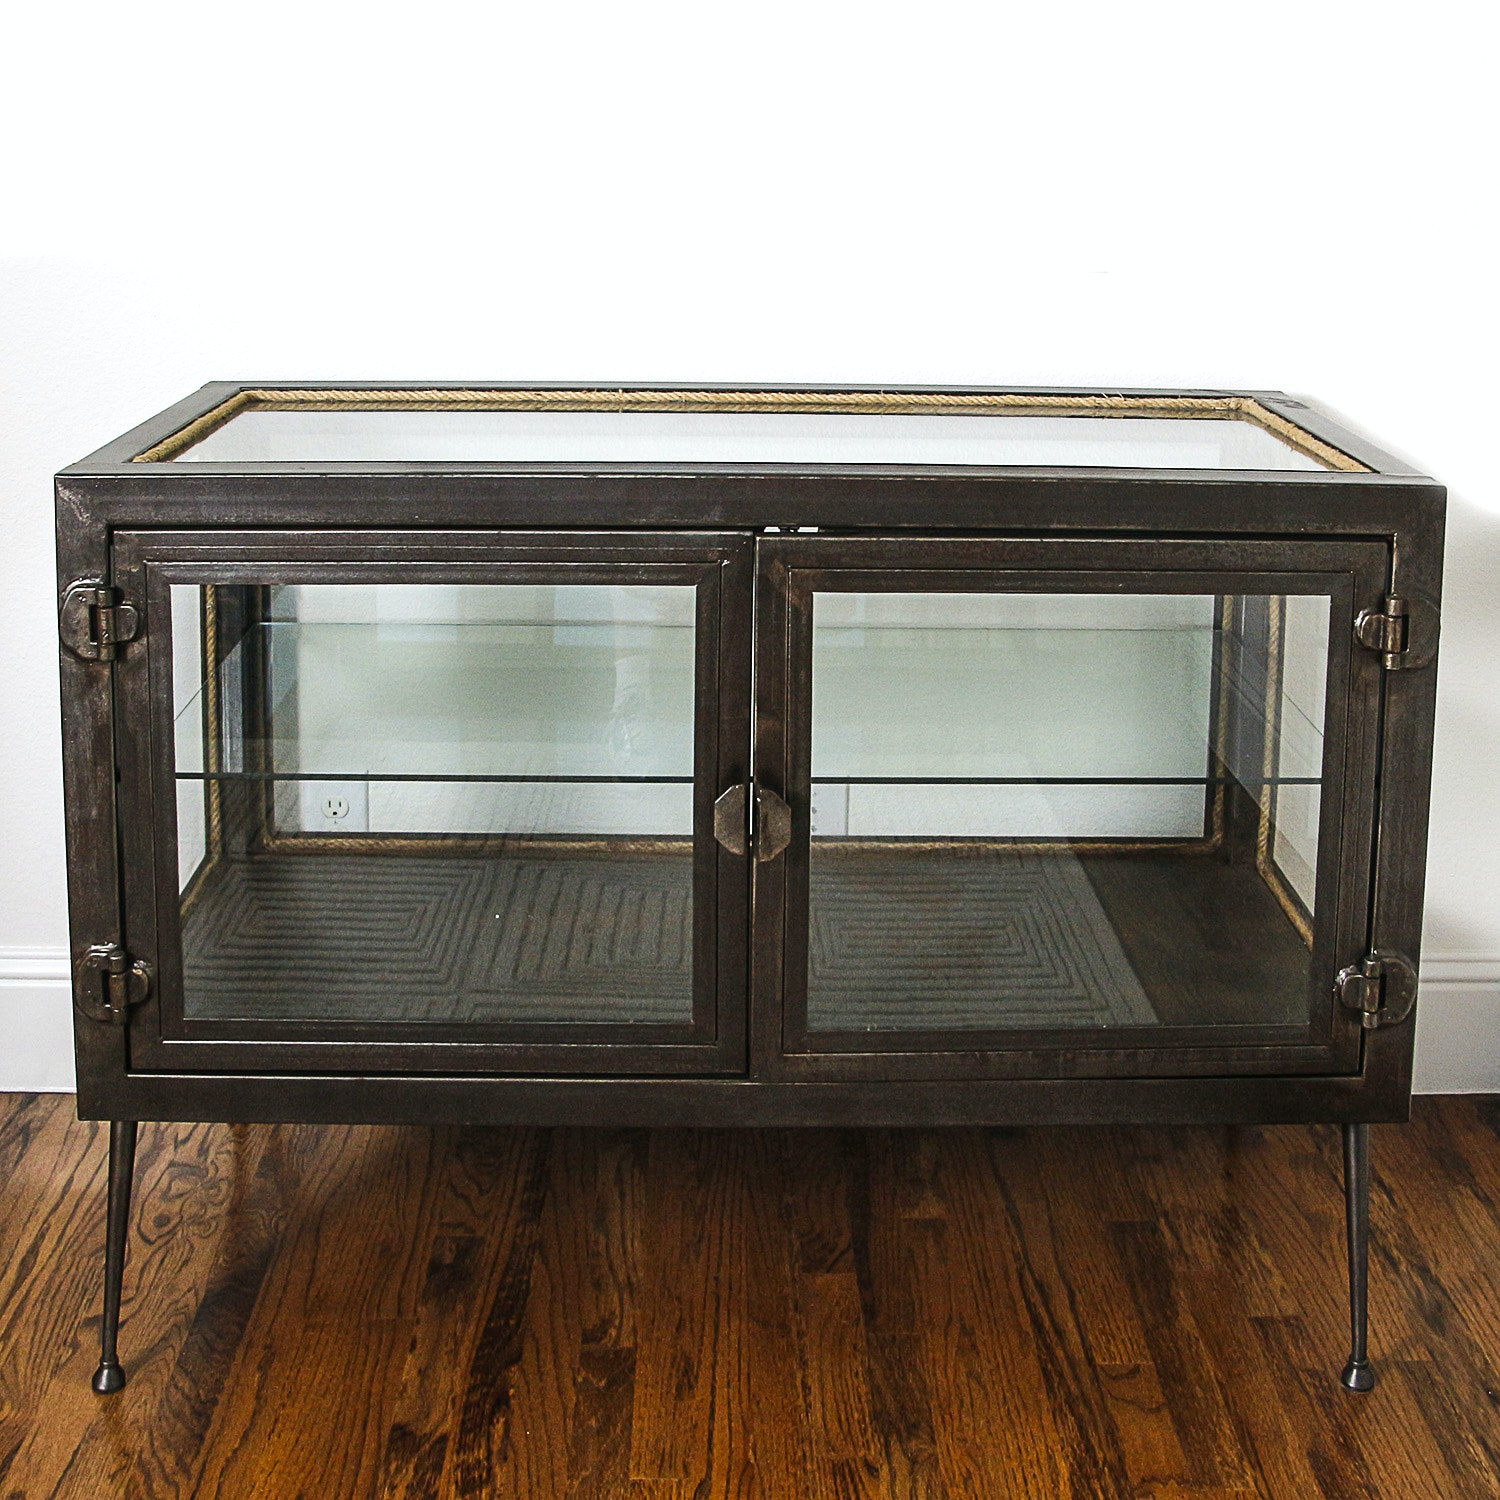 Contemporary Glass and Metal Display Cabinet